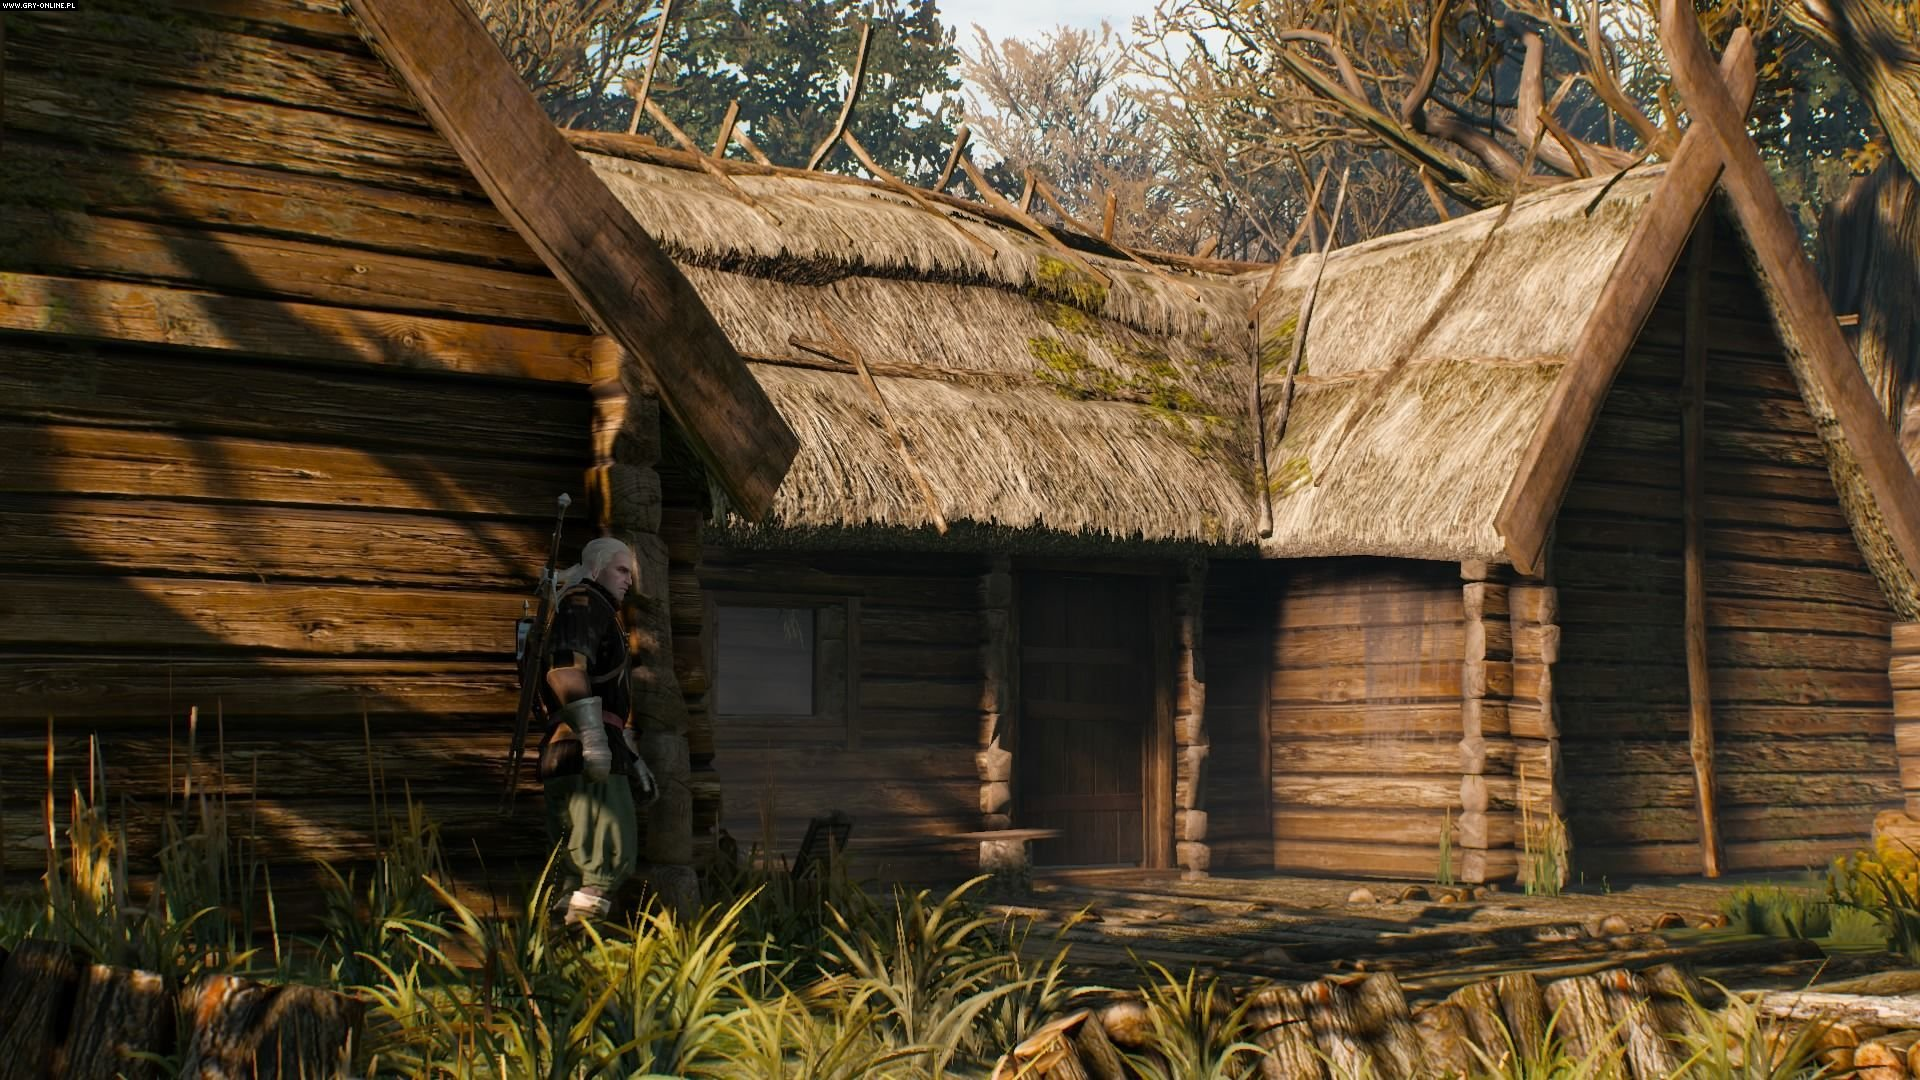 The Witcher 3: Wild Hunt PS4 Games Image 1/185, CD Projekt RED, Bandai Namco Entertainment